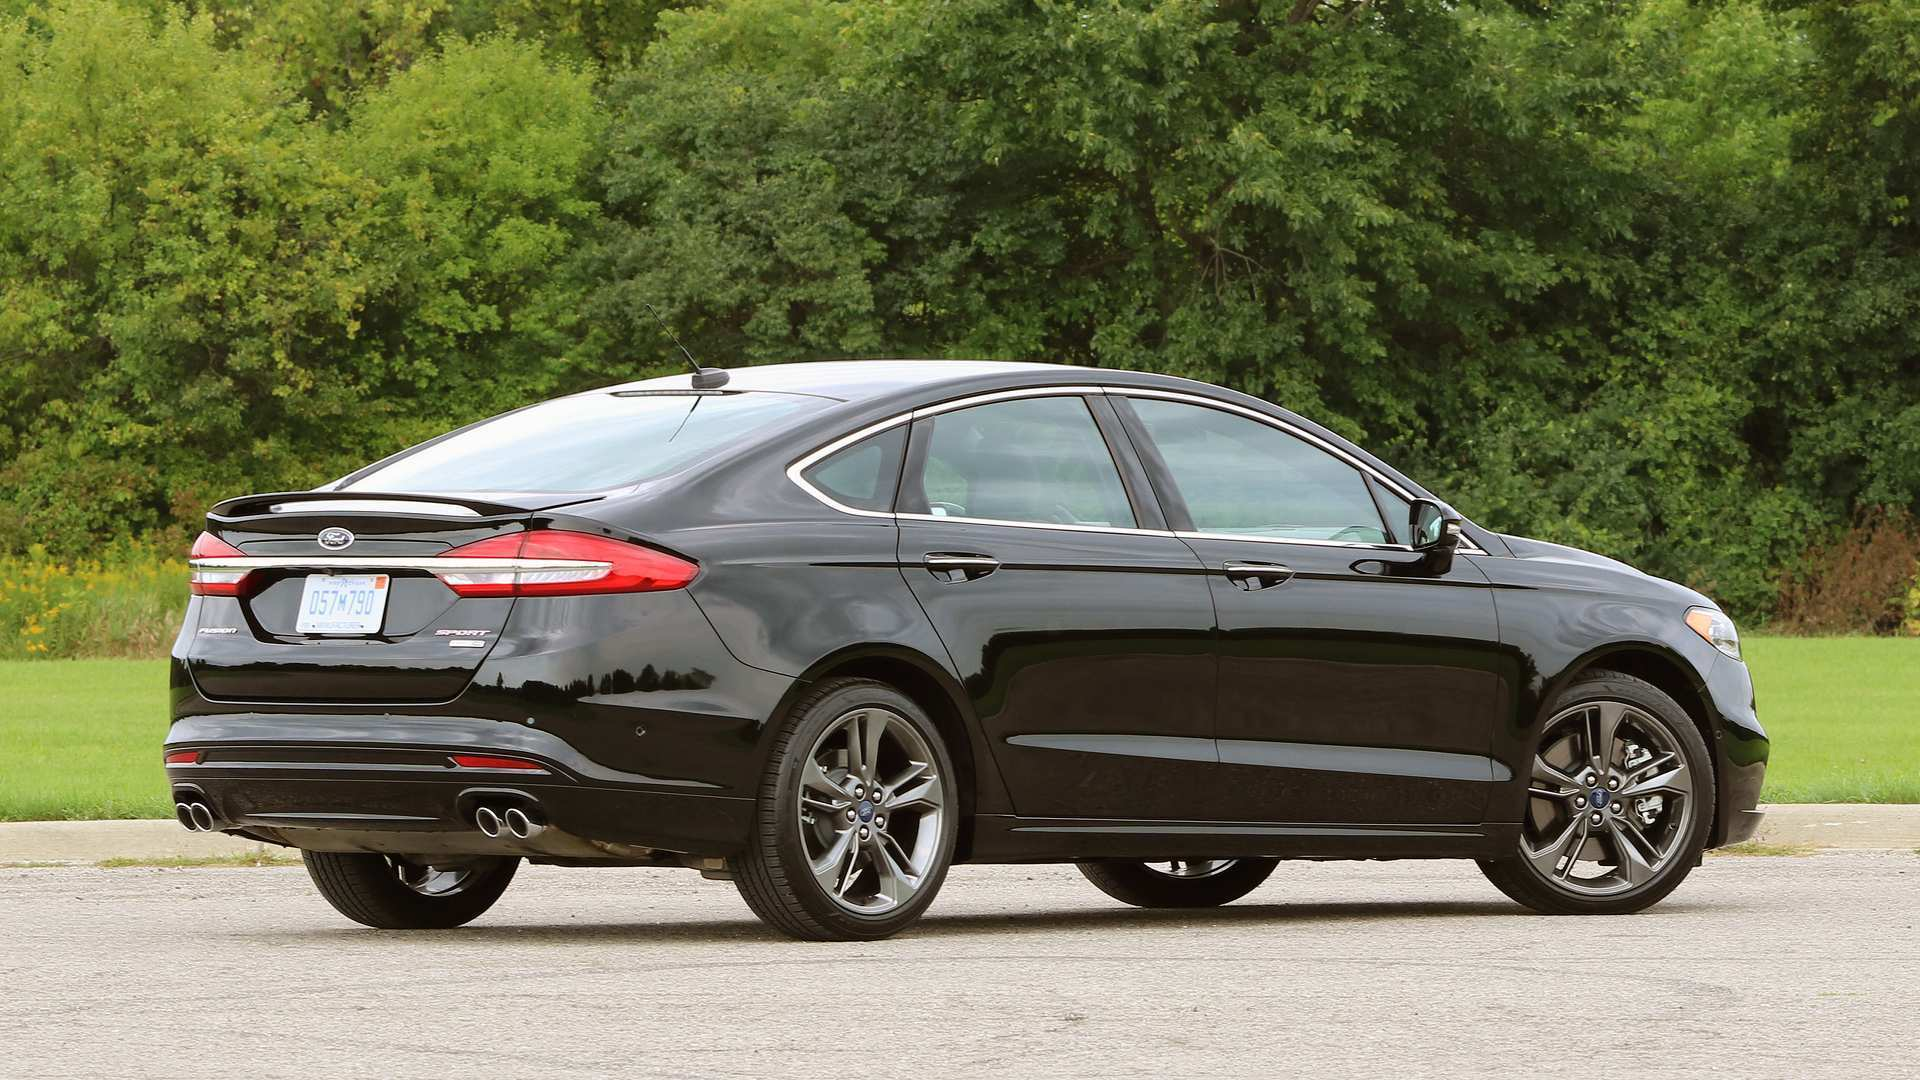 76 New Spy Shots 2020 Ford Fusion Pricing for Spy Shots 2020 Ford Fusion